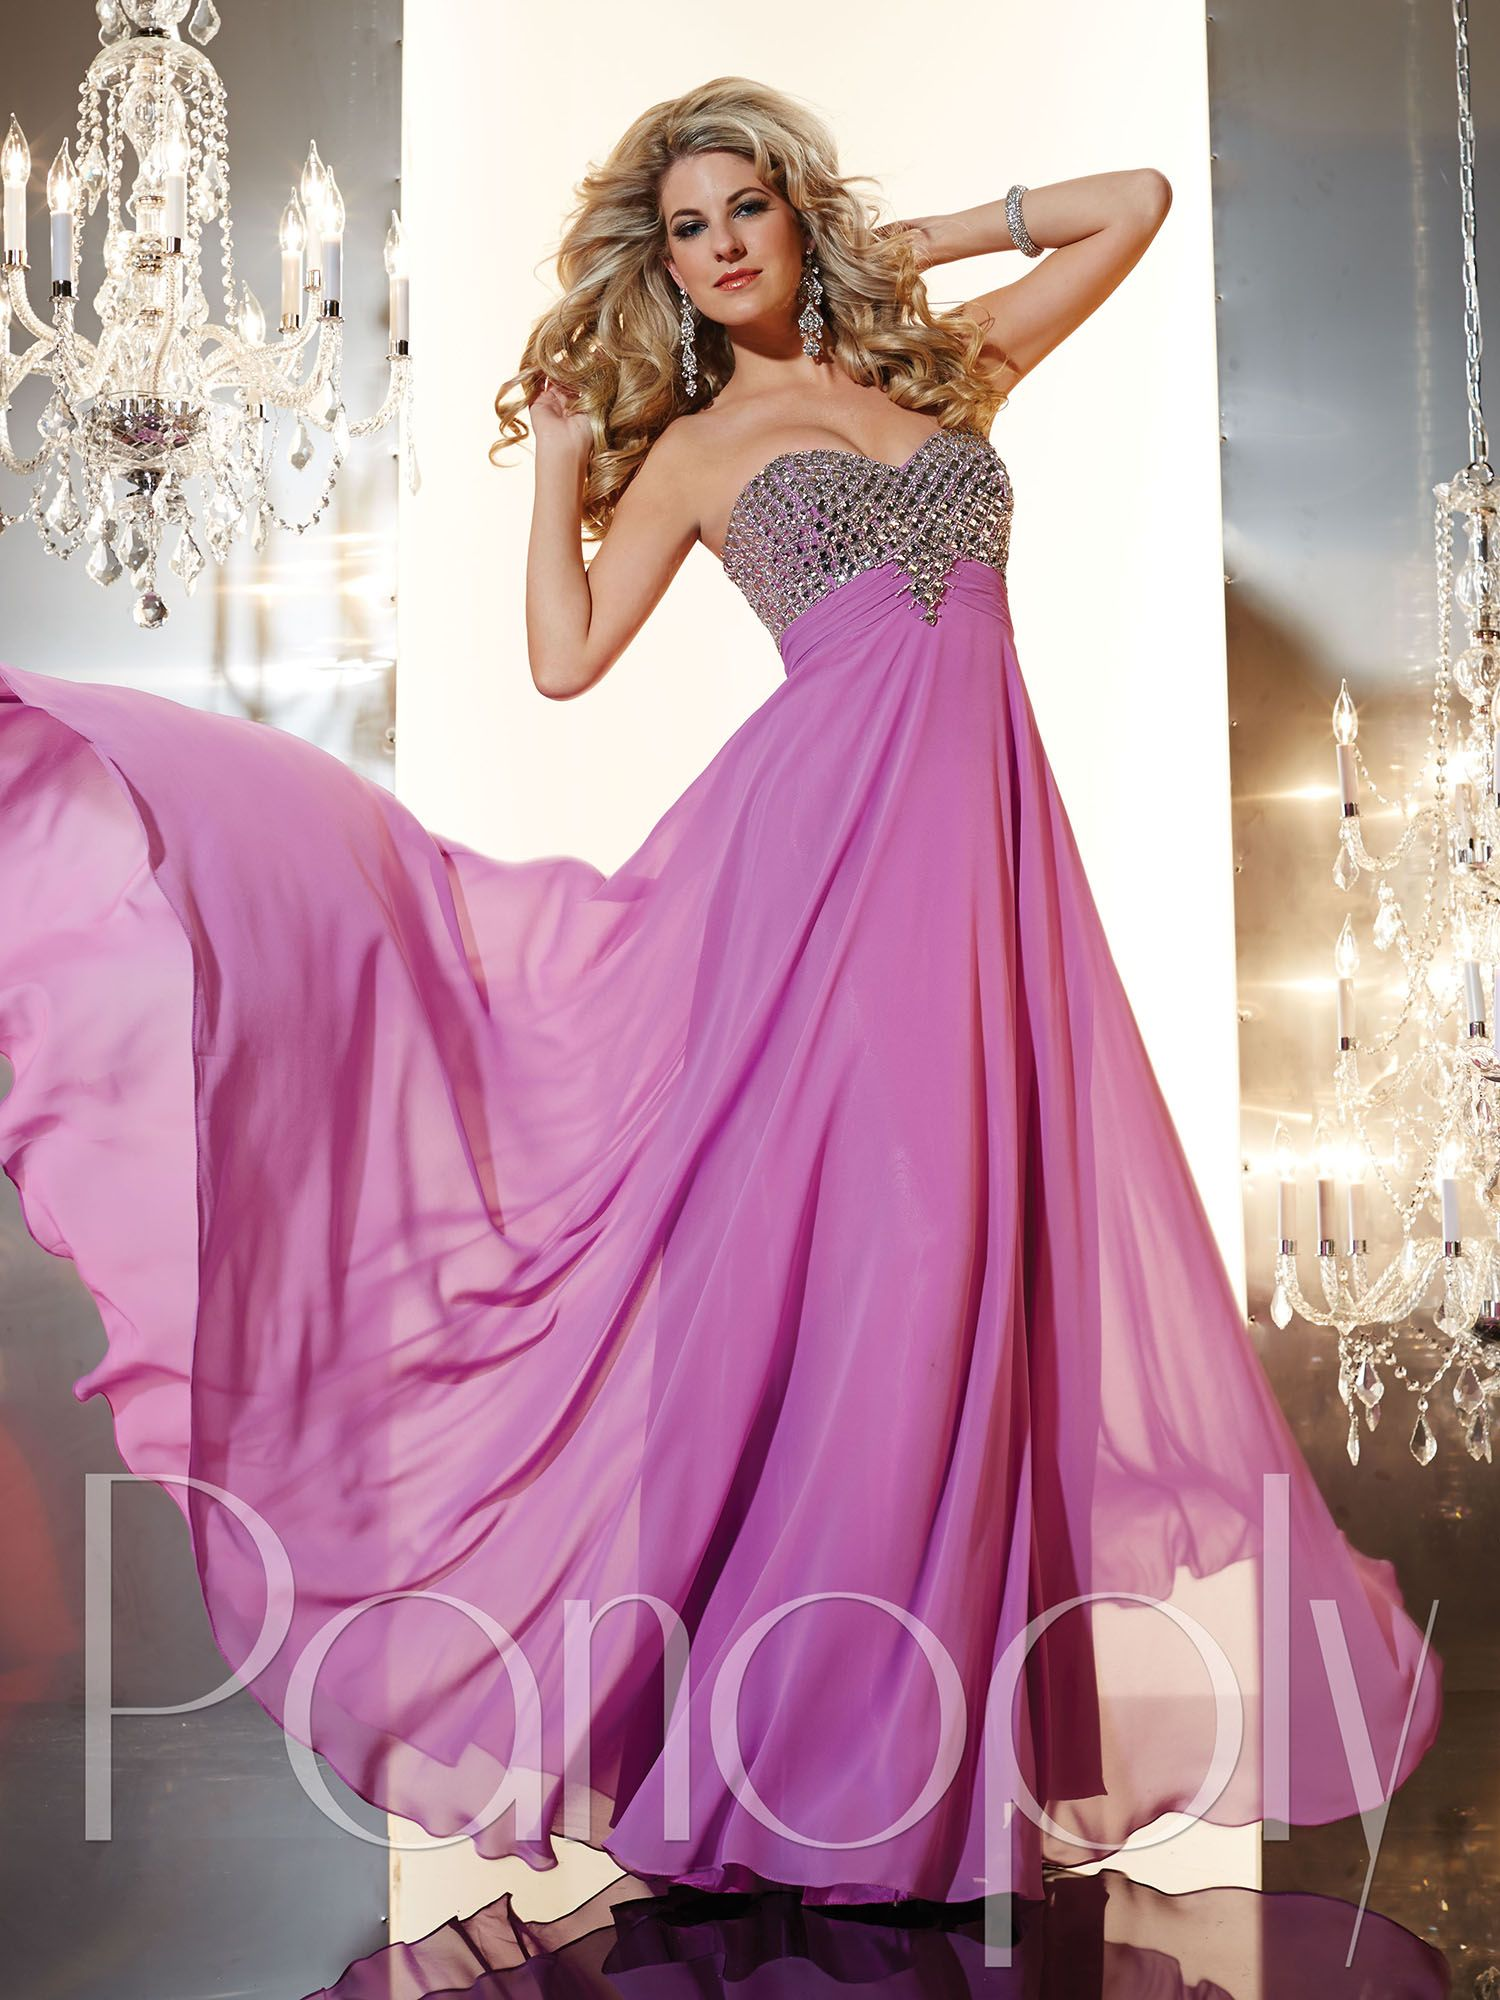 Panoply Style 14643: | Prom and Homecoming Dresses | Pinterest